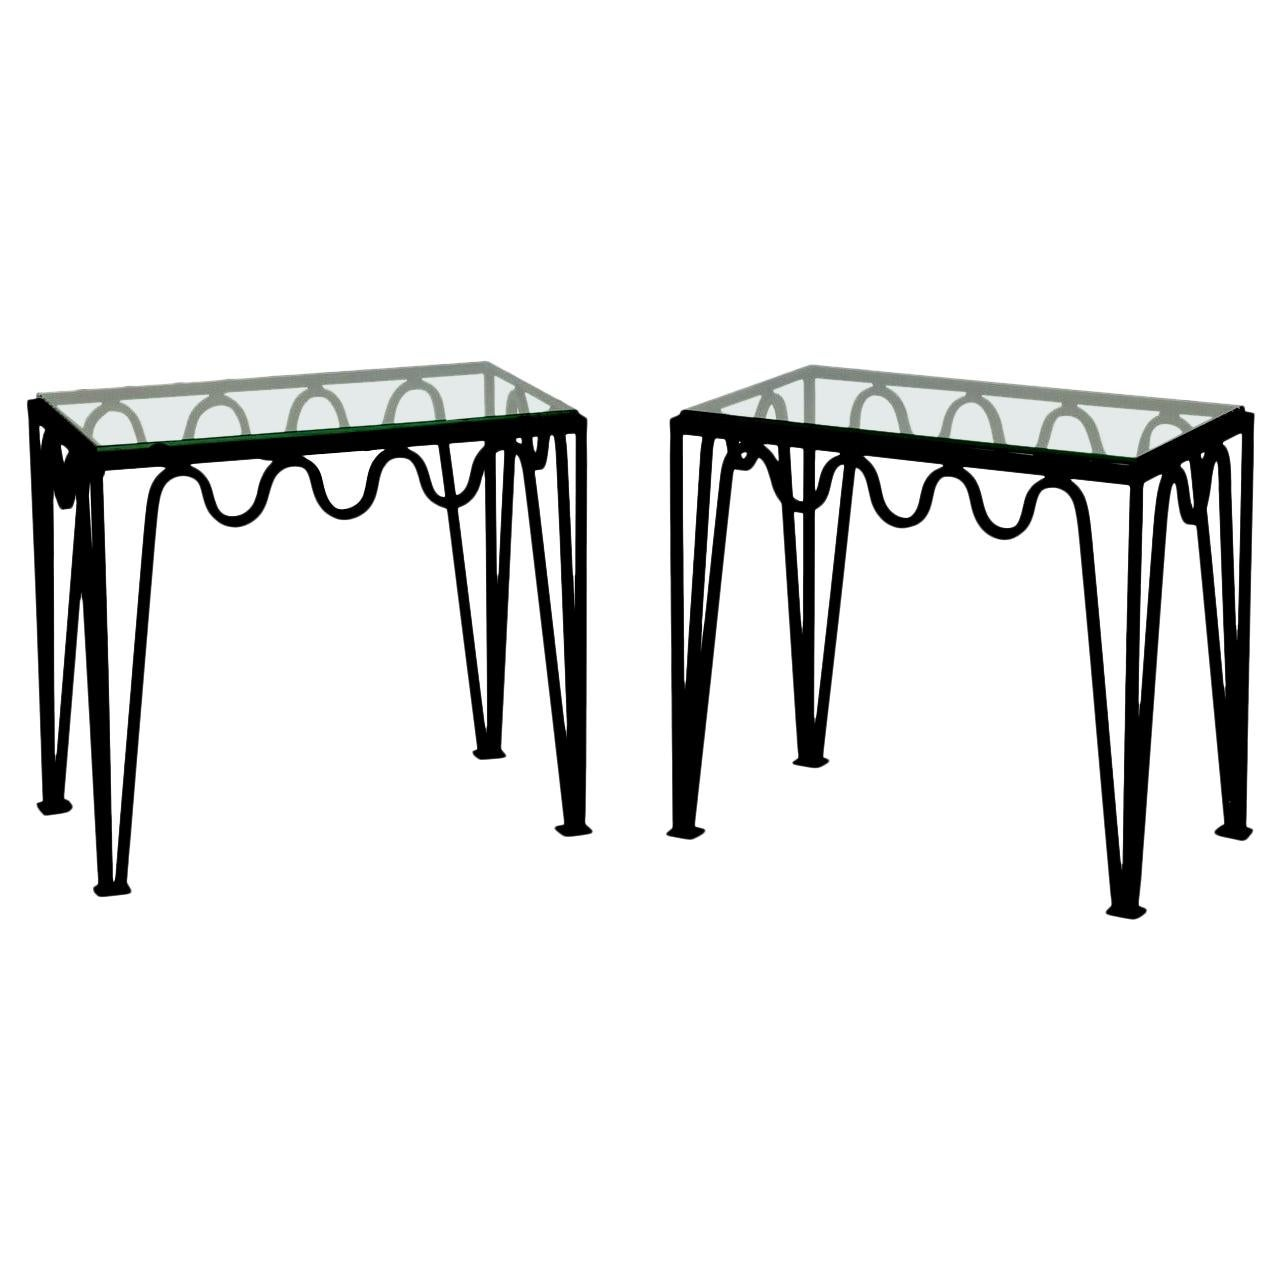 Pair of 'Méandre' Blackened Steel and Glass Side Tables by Design Frères